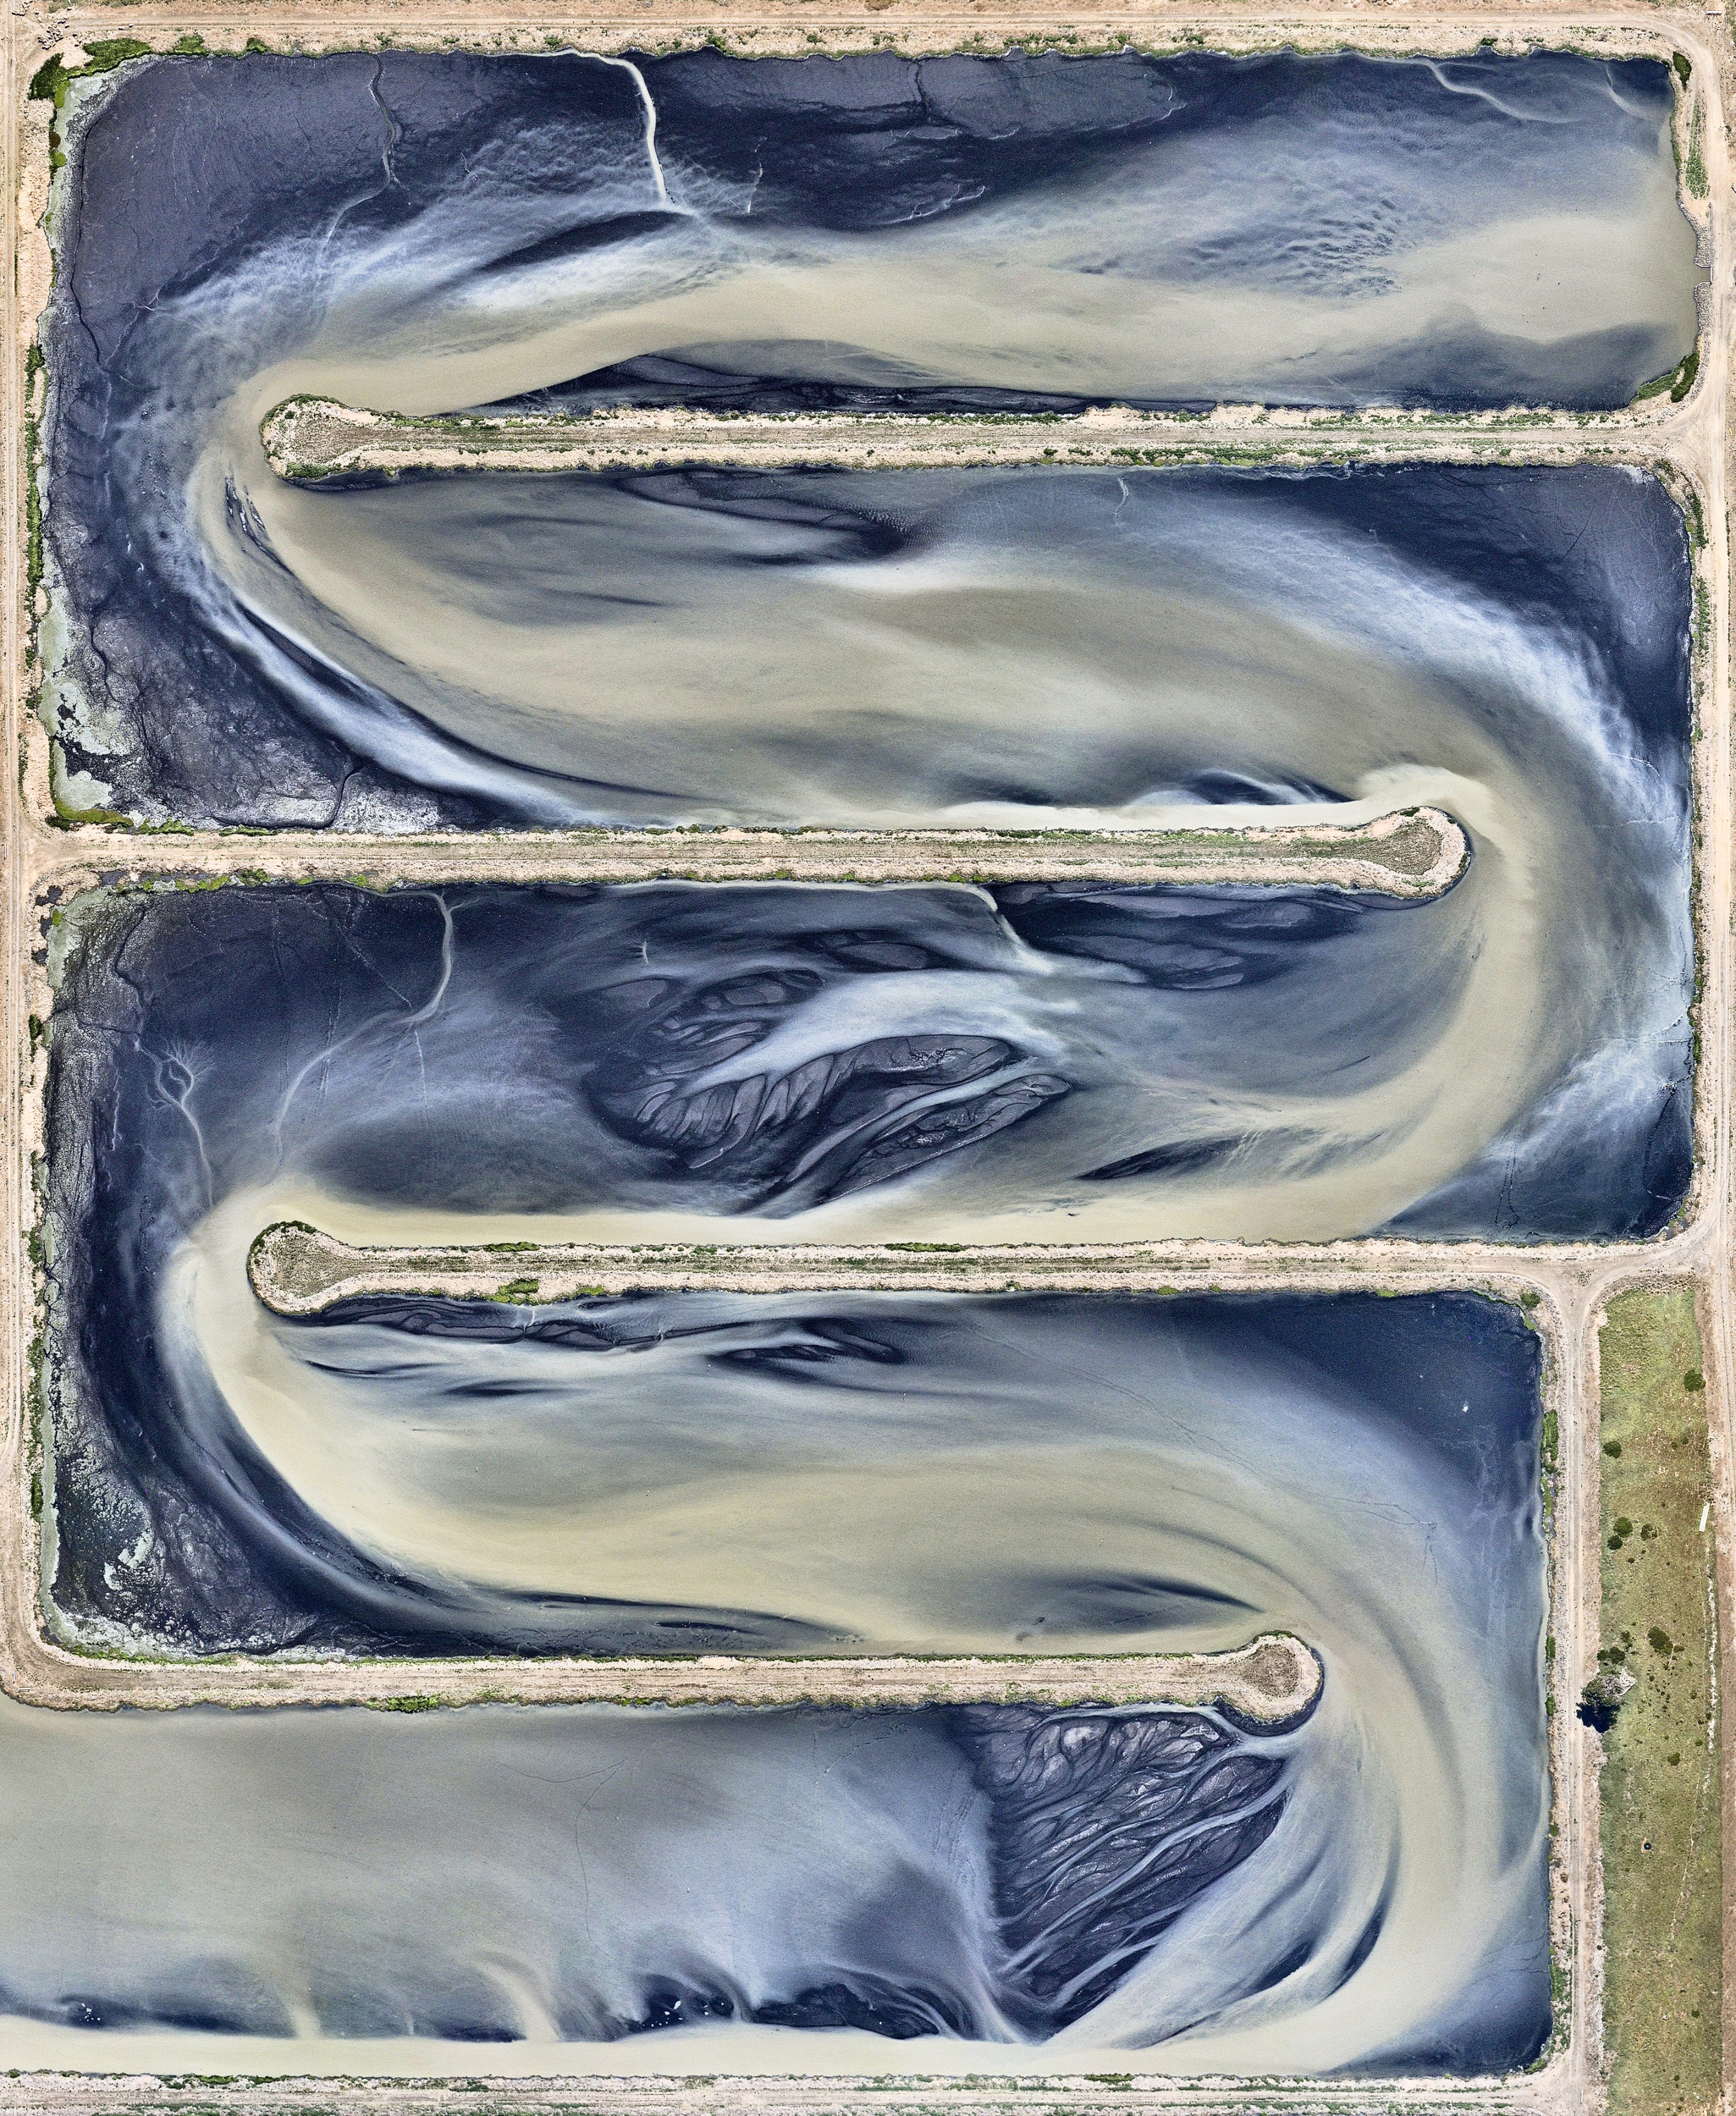 A sewage treatment pond is seen at the Western Treatment Plant in Cocoroc, Australia. This facility treats half of the sewage produced in the nearby city of Melbourne and is nearly 26,000 acres (10,500 hectares) in size — roughly equal to the total area of Disney World. The Western Treatment Plant produces 10.5 billion gallons (40 billion liters) of Class A water, the highest standard of recycled water.  -37.985213°, 144.609568°  Source imagery: Nearmap